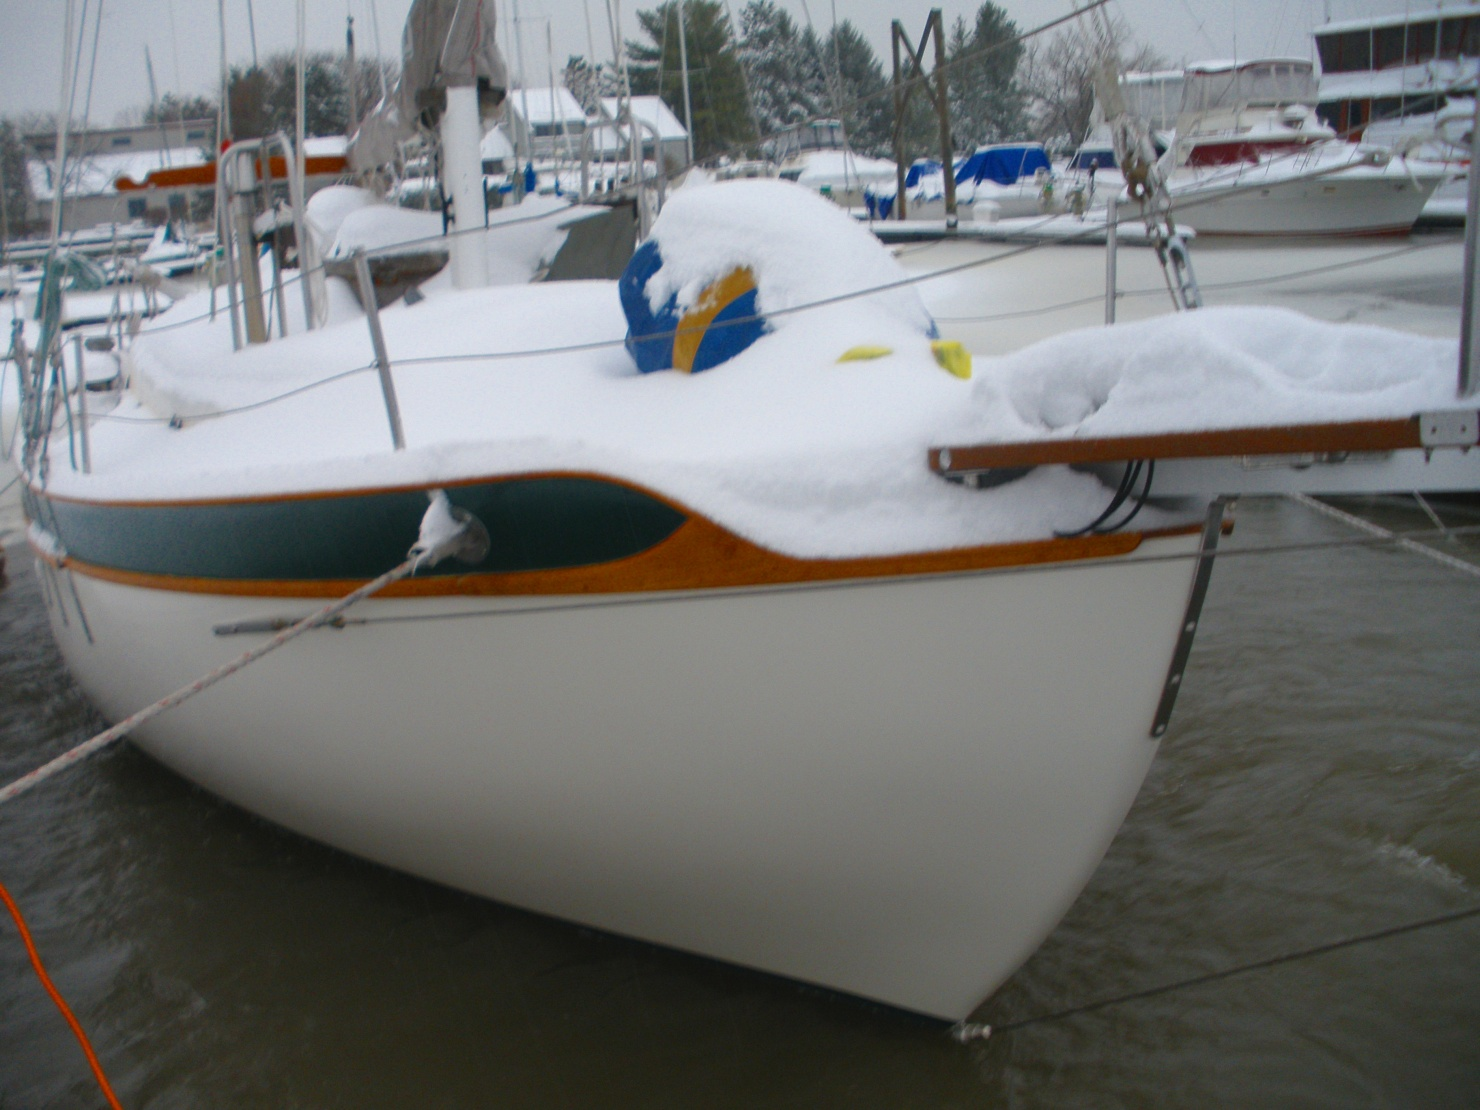 Click image for larger version  Name:Foredeck Snow Feb 5 2014.jpg Views:70 Size:401.3 KB ID:75459